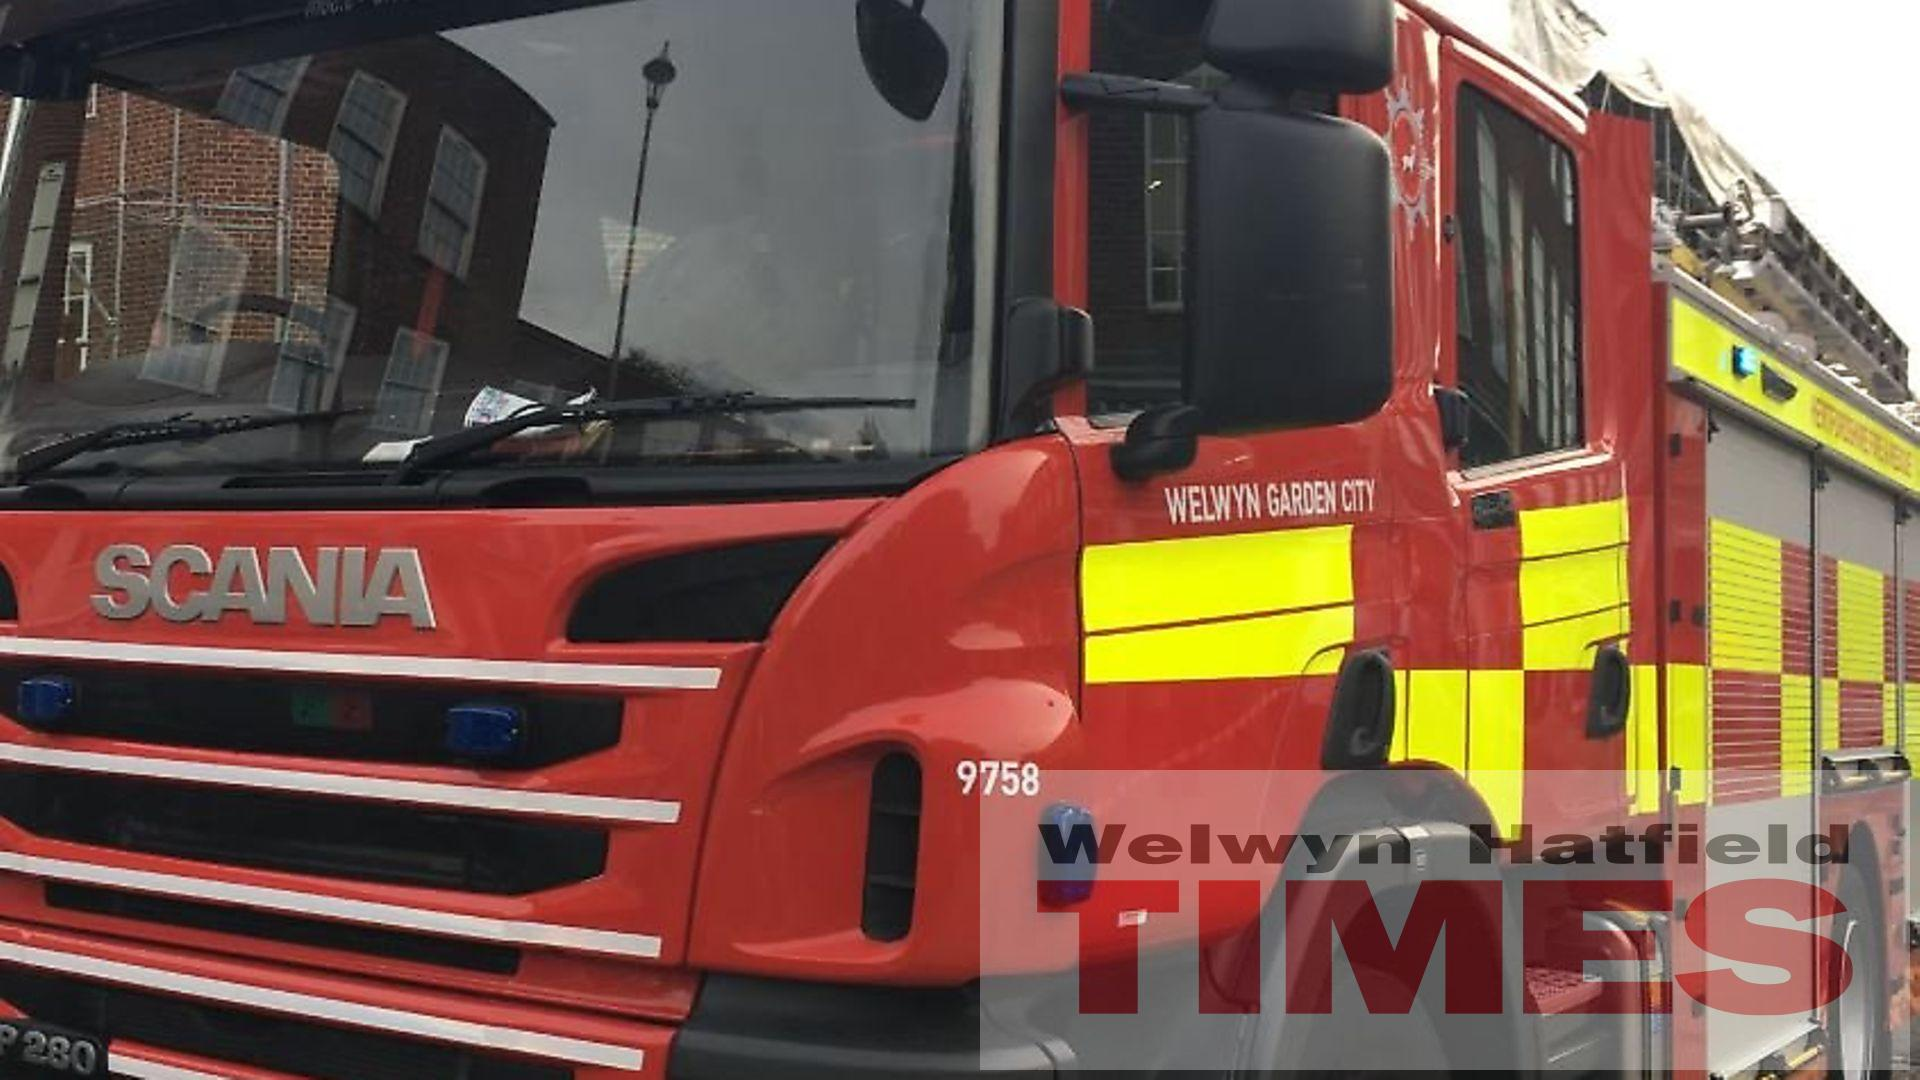 Welwyn Garden City competition to name fire engine ...